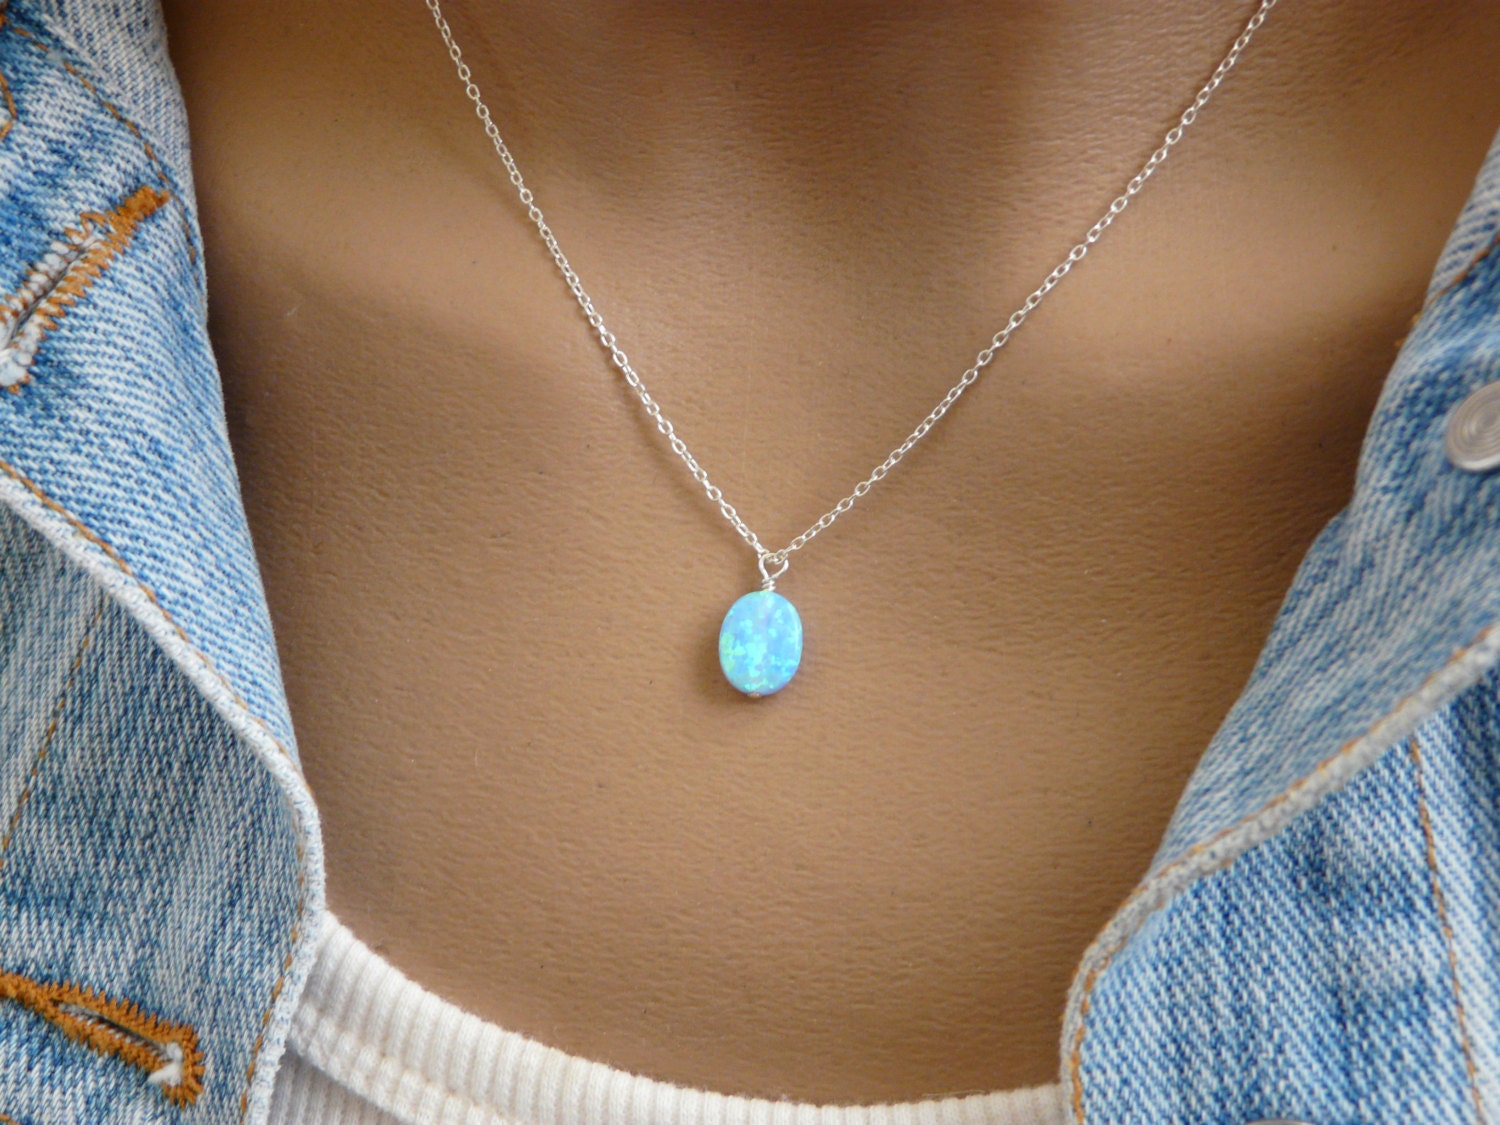 sterling jewelry blue item necklace hub lam created silver pendant luxury fong classic in zirconia drop opal shape from water necklaces